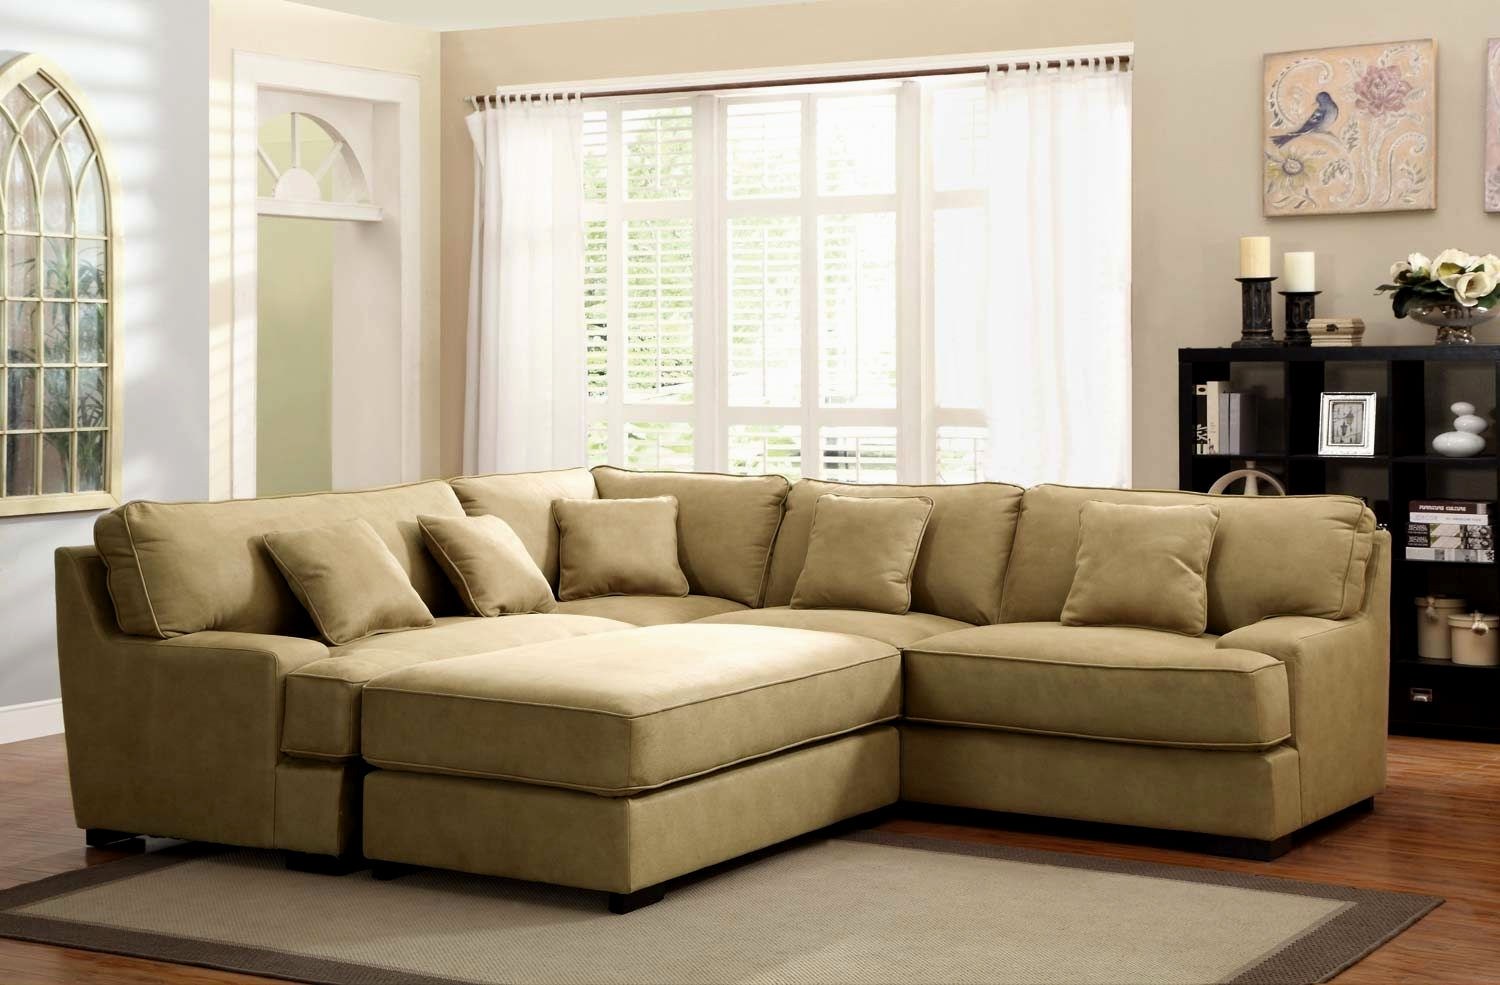 top cheap sectional sofas under 500 decoration-Superb Cheap Sectional sofas Under 500 Ideas